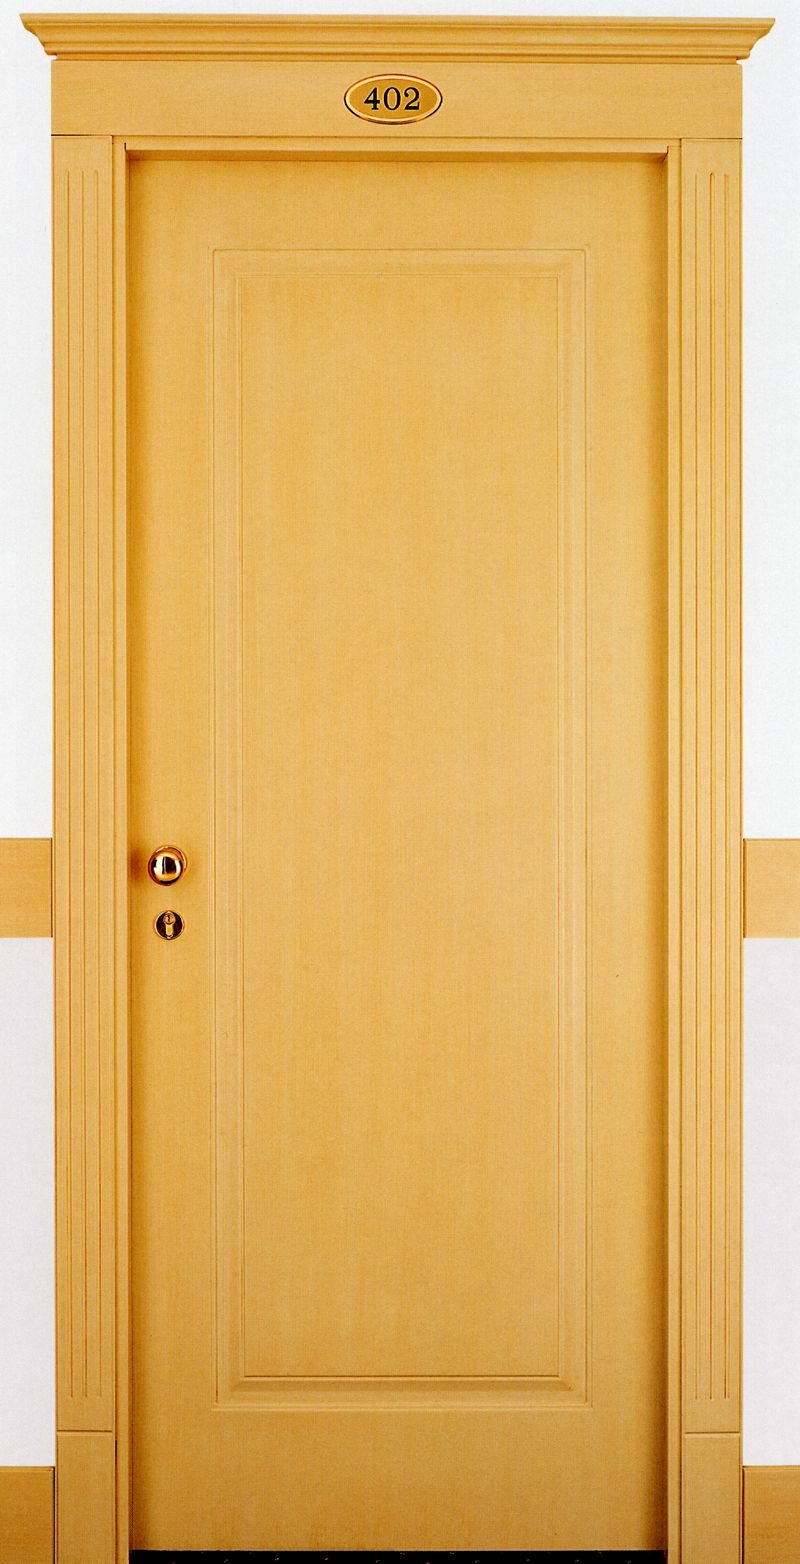 Fire rated doors photo gallery qualital - What is a fire rated door ...